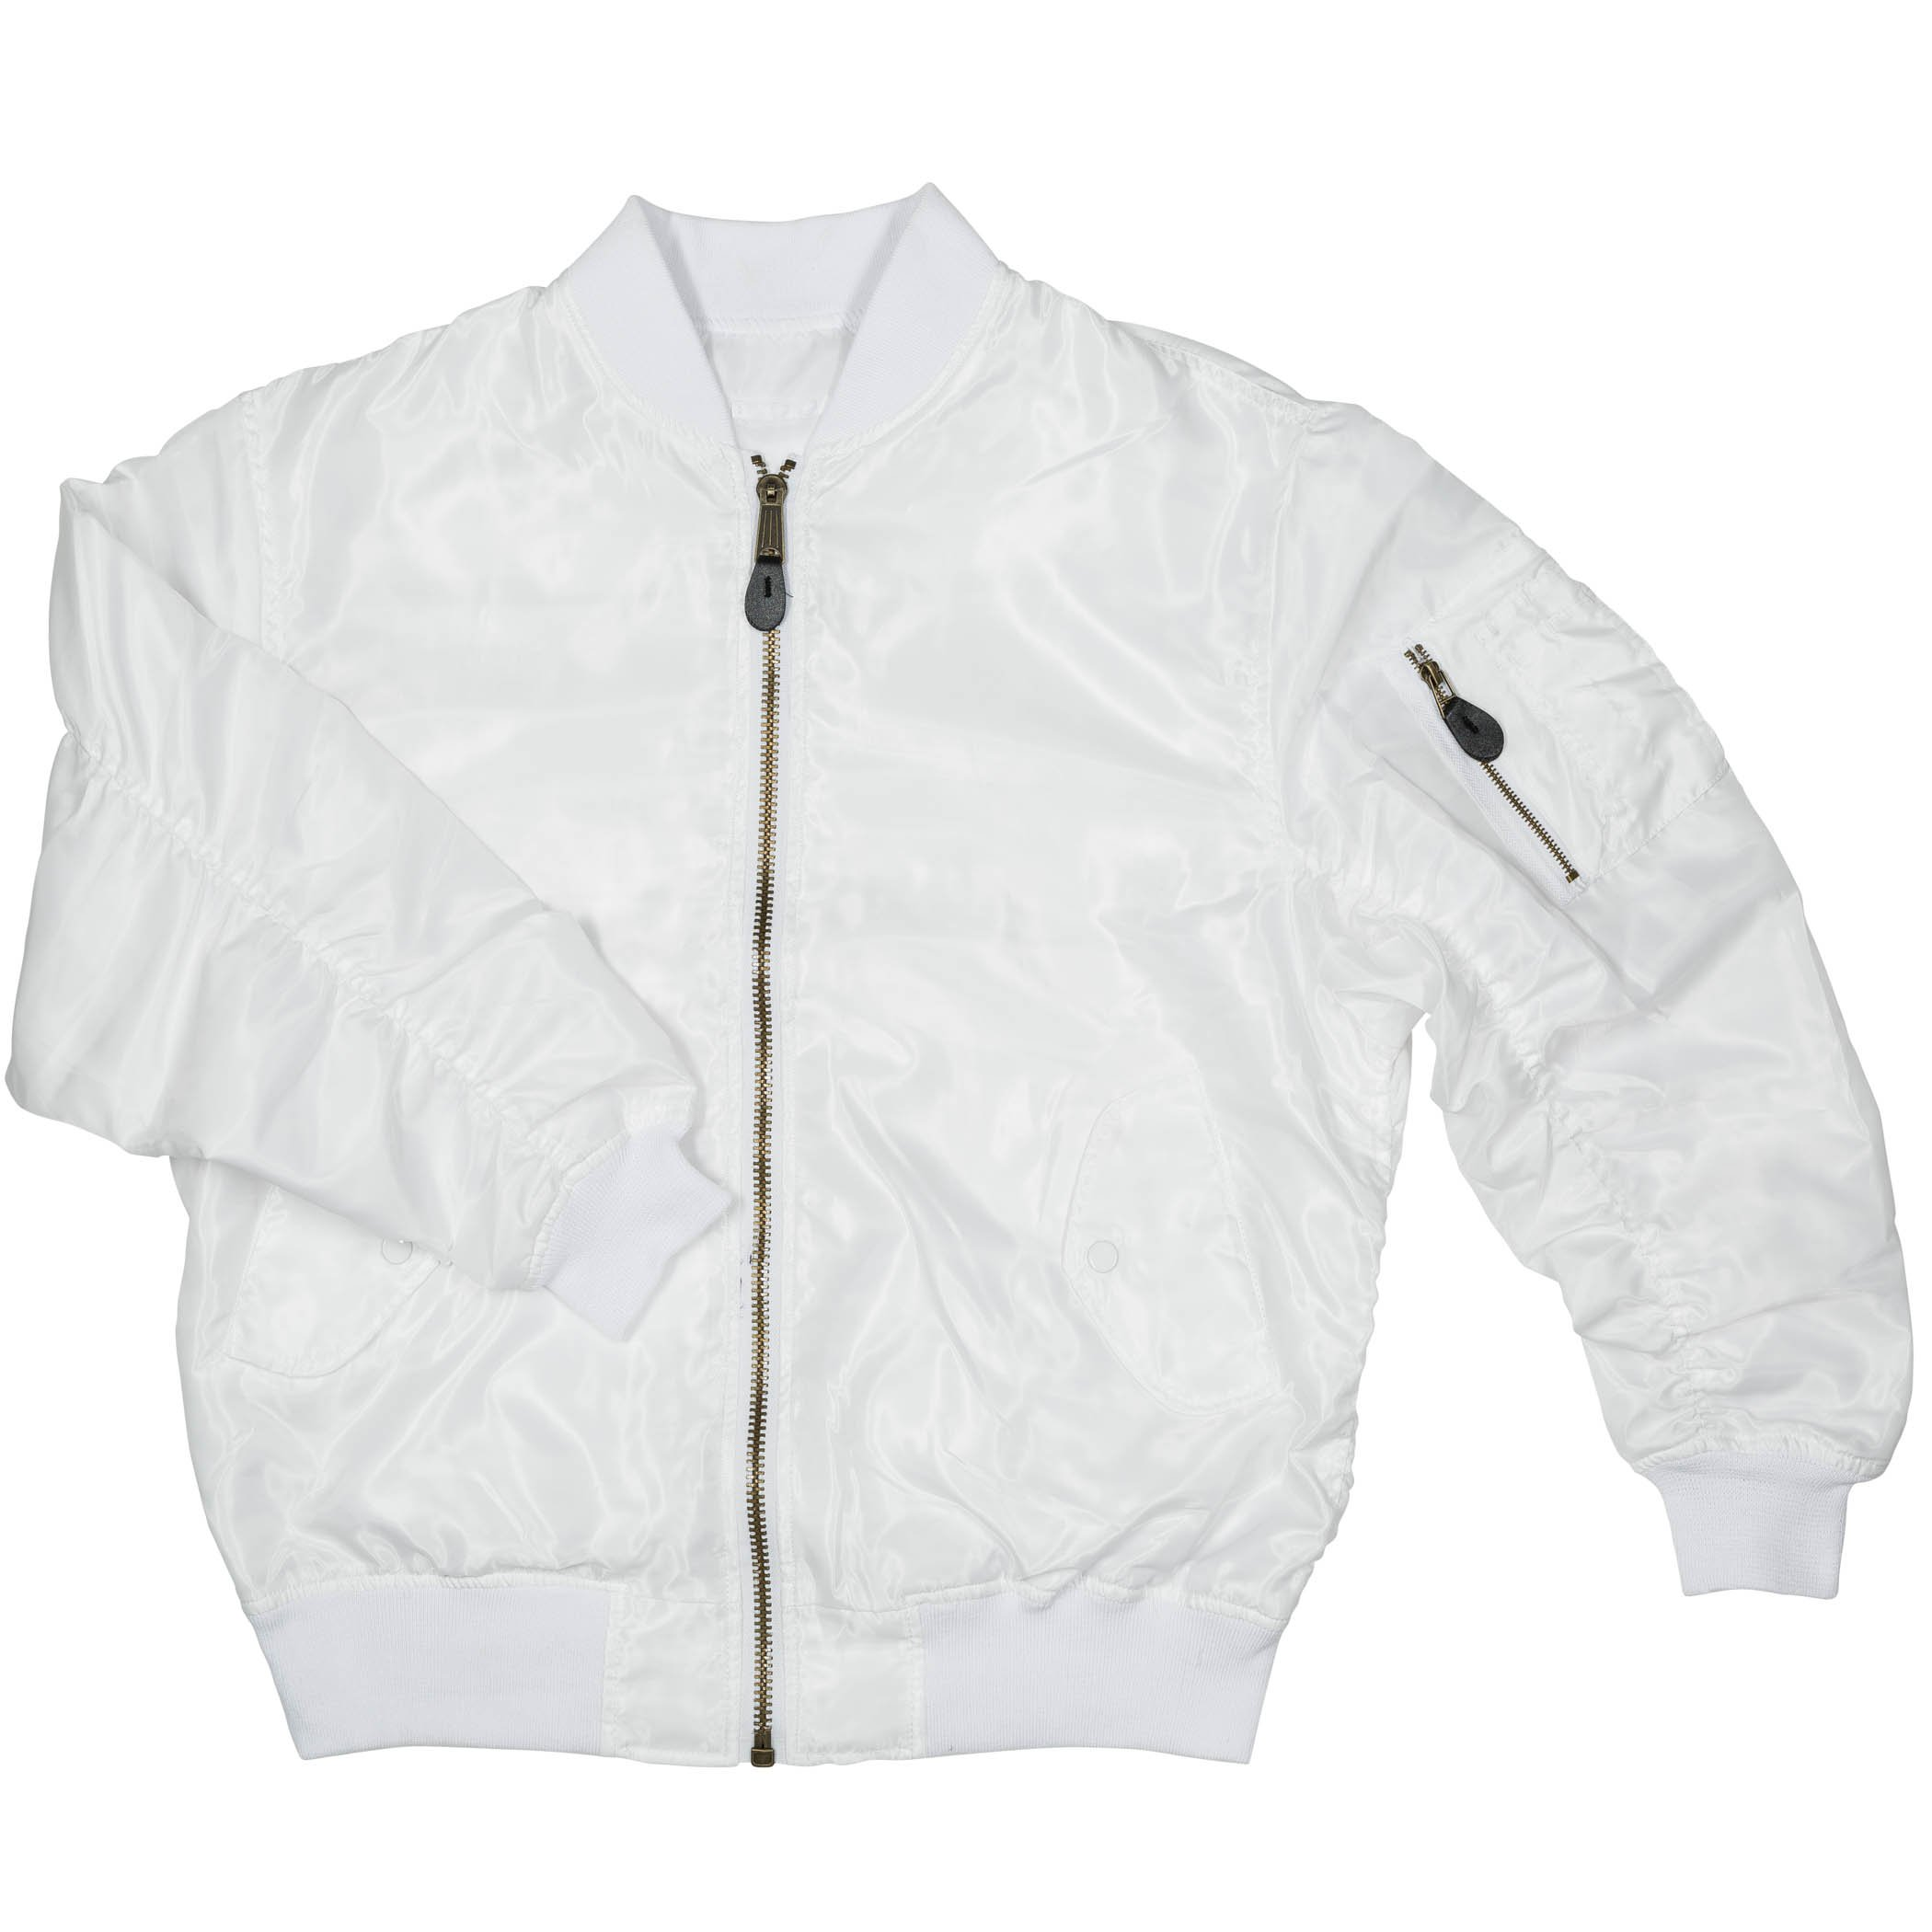 Men's MA-1 Spring Reversible Flight Bomber Pilot Jacket-MA6-Wht-Lg